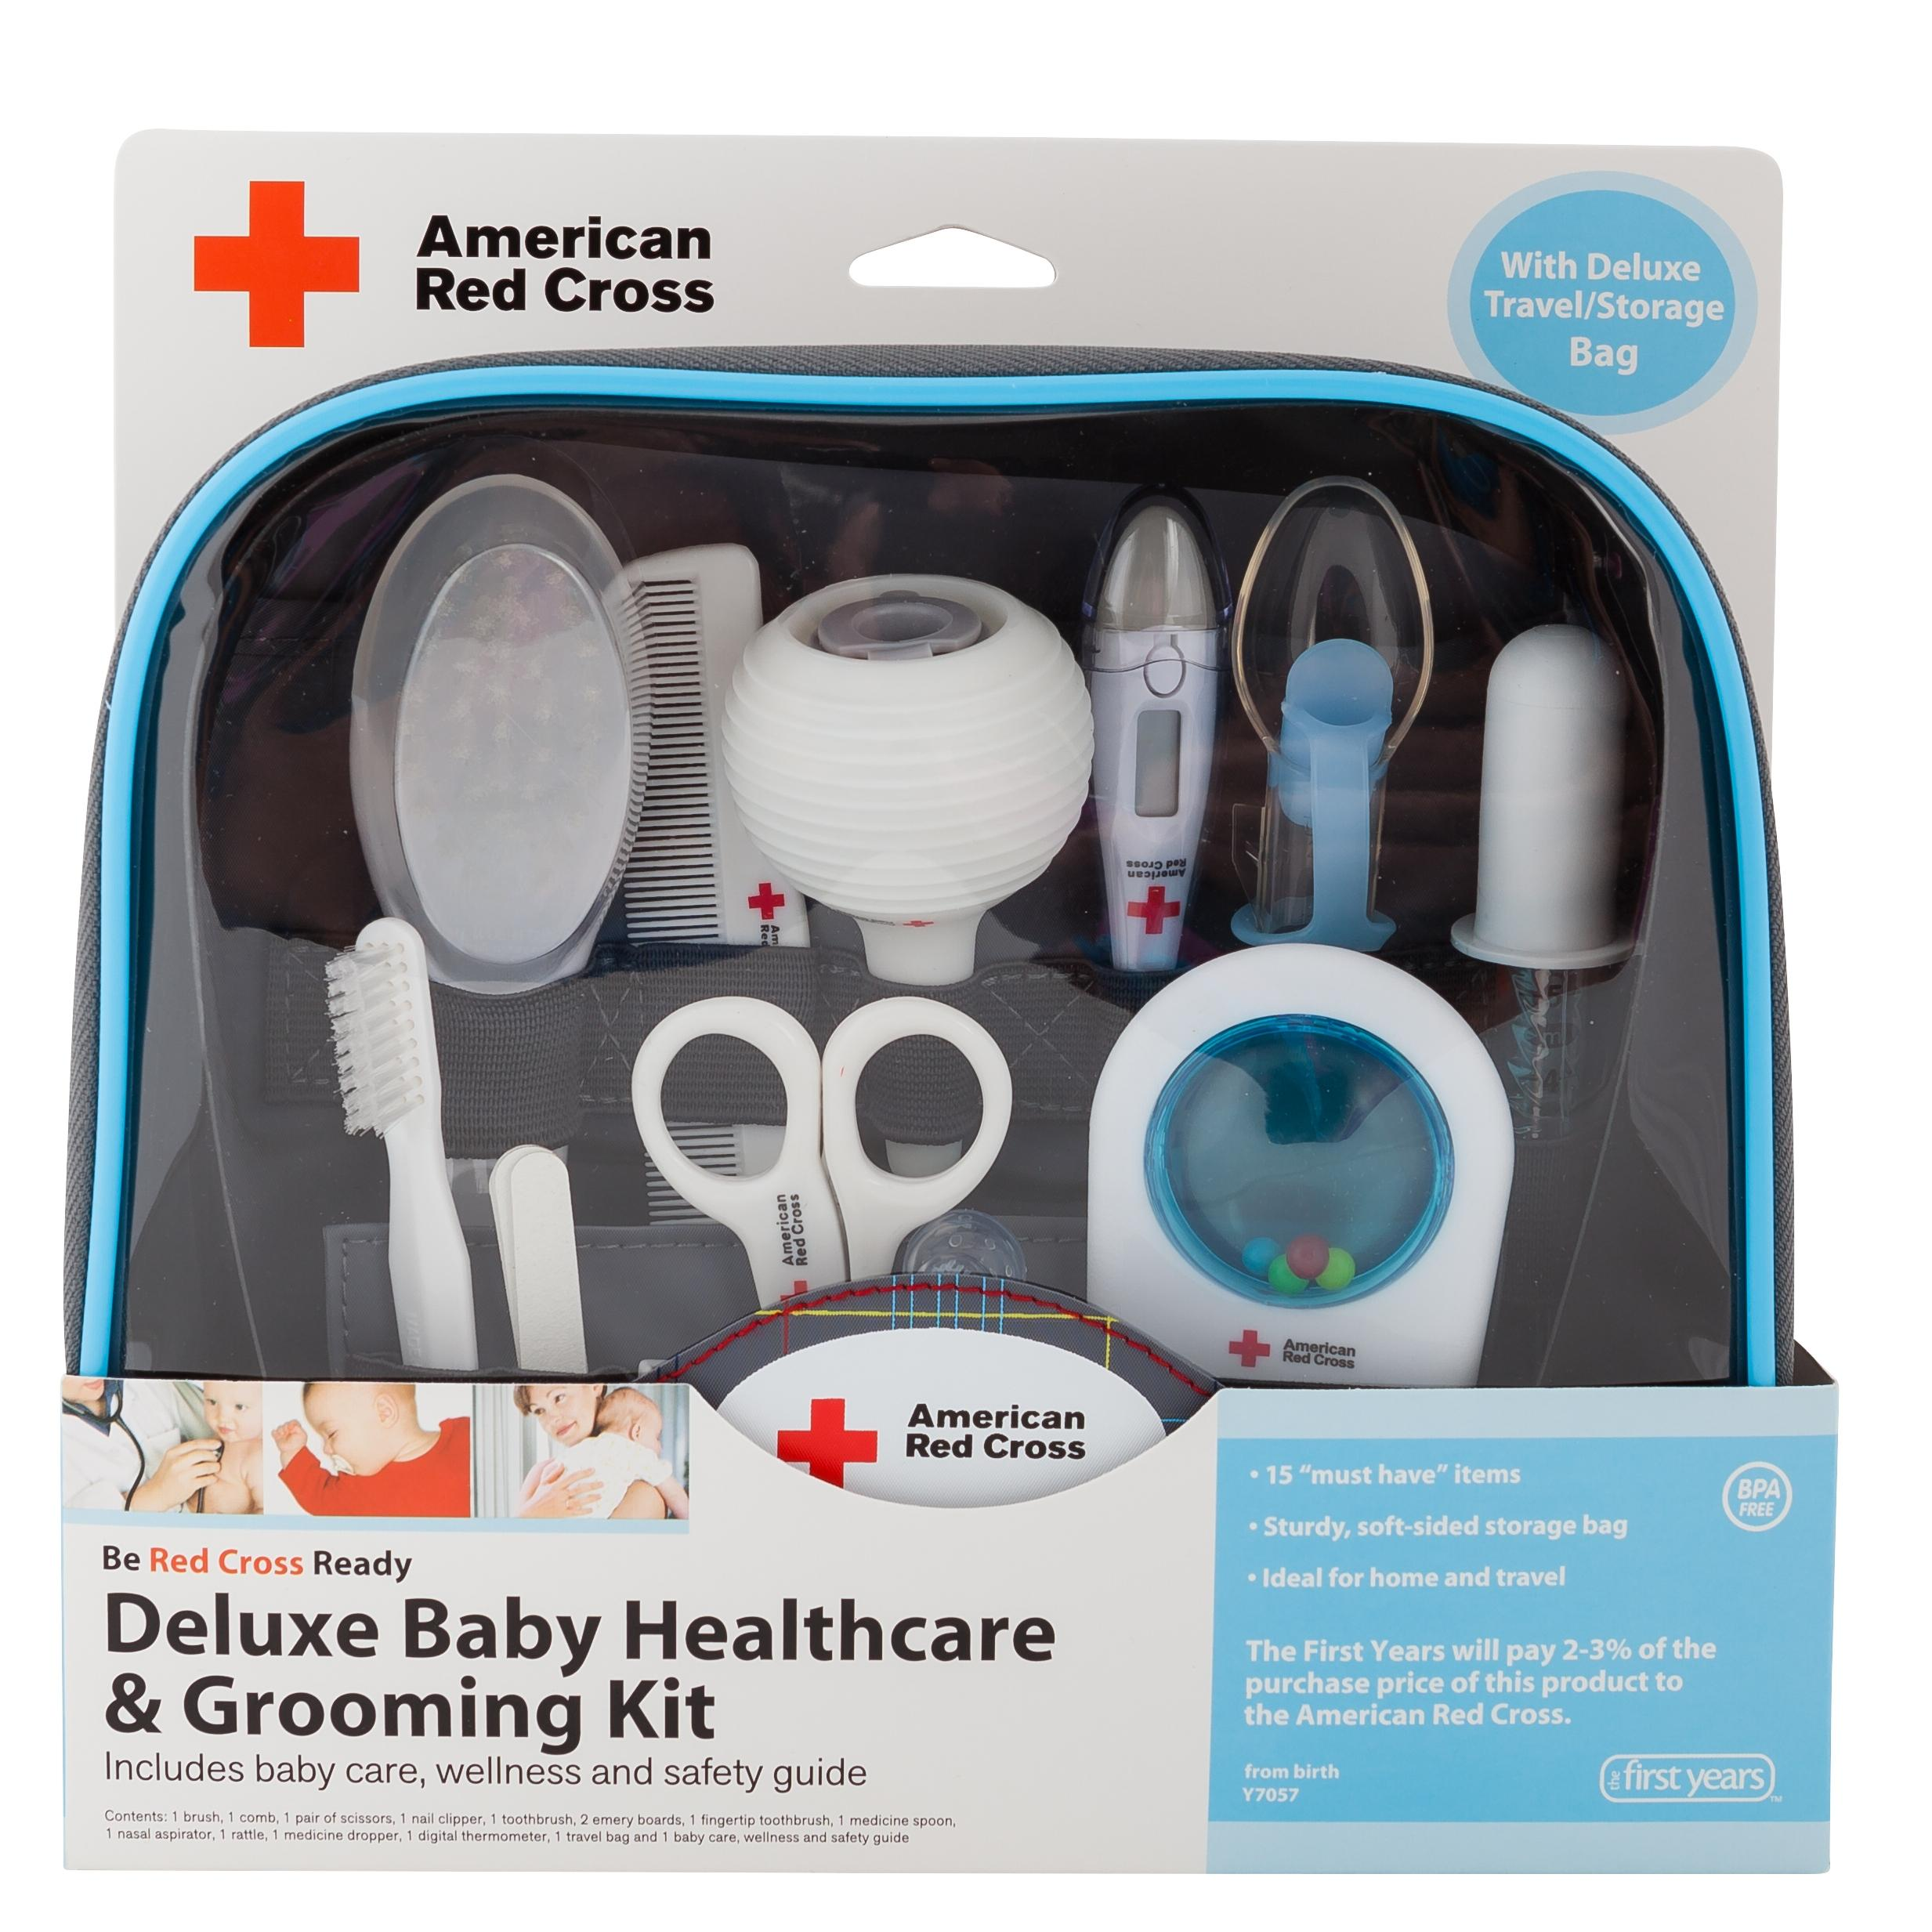 Grooming kit for baby